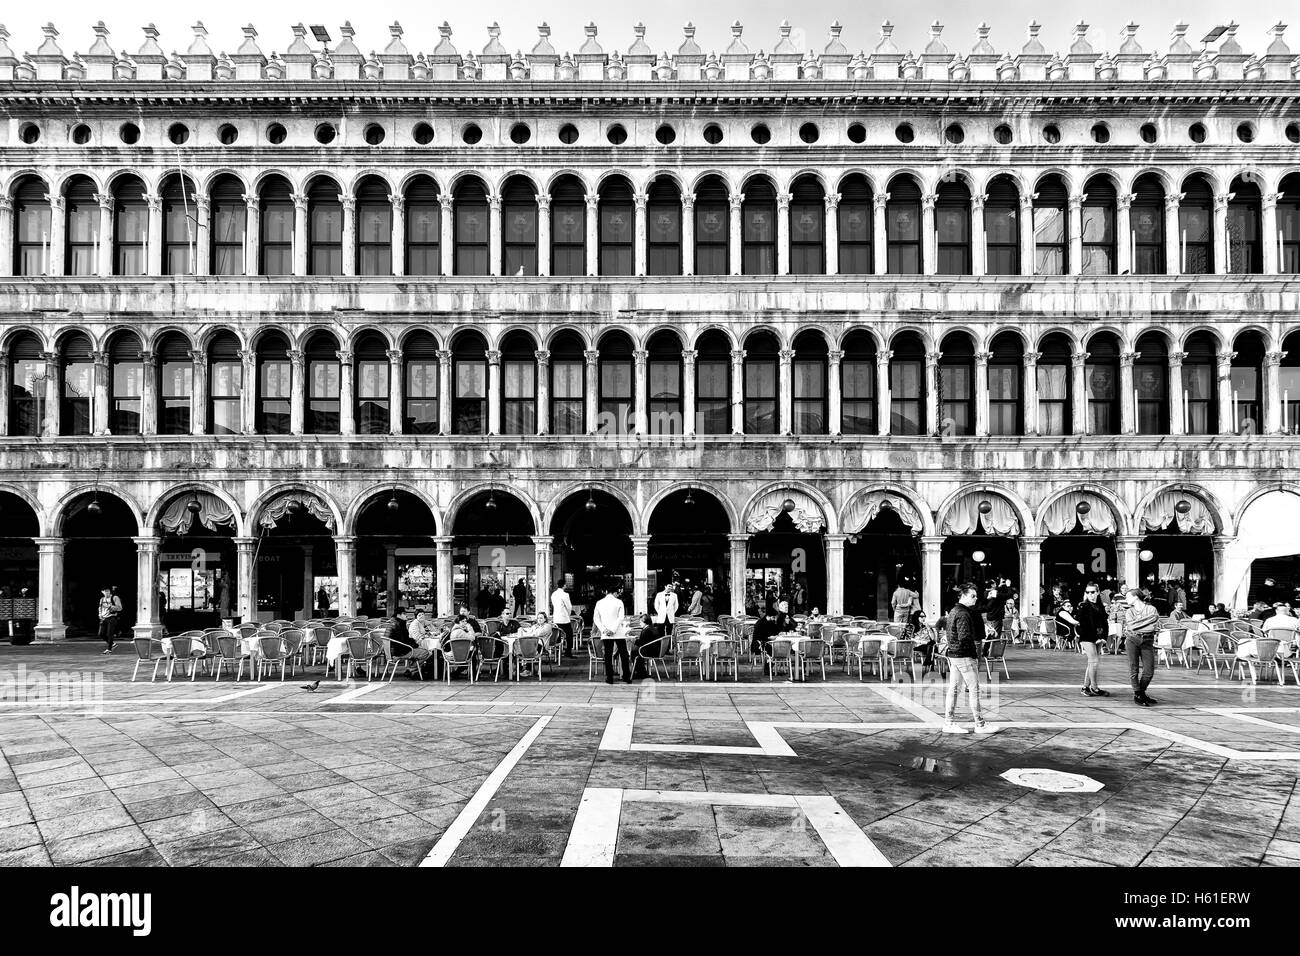 Venice, Italy - October 16, 2016:Tourists in Piazza San Marco in Venice, the famous Italian romantic city - Stock Image